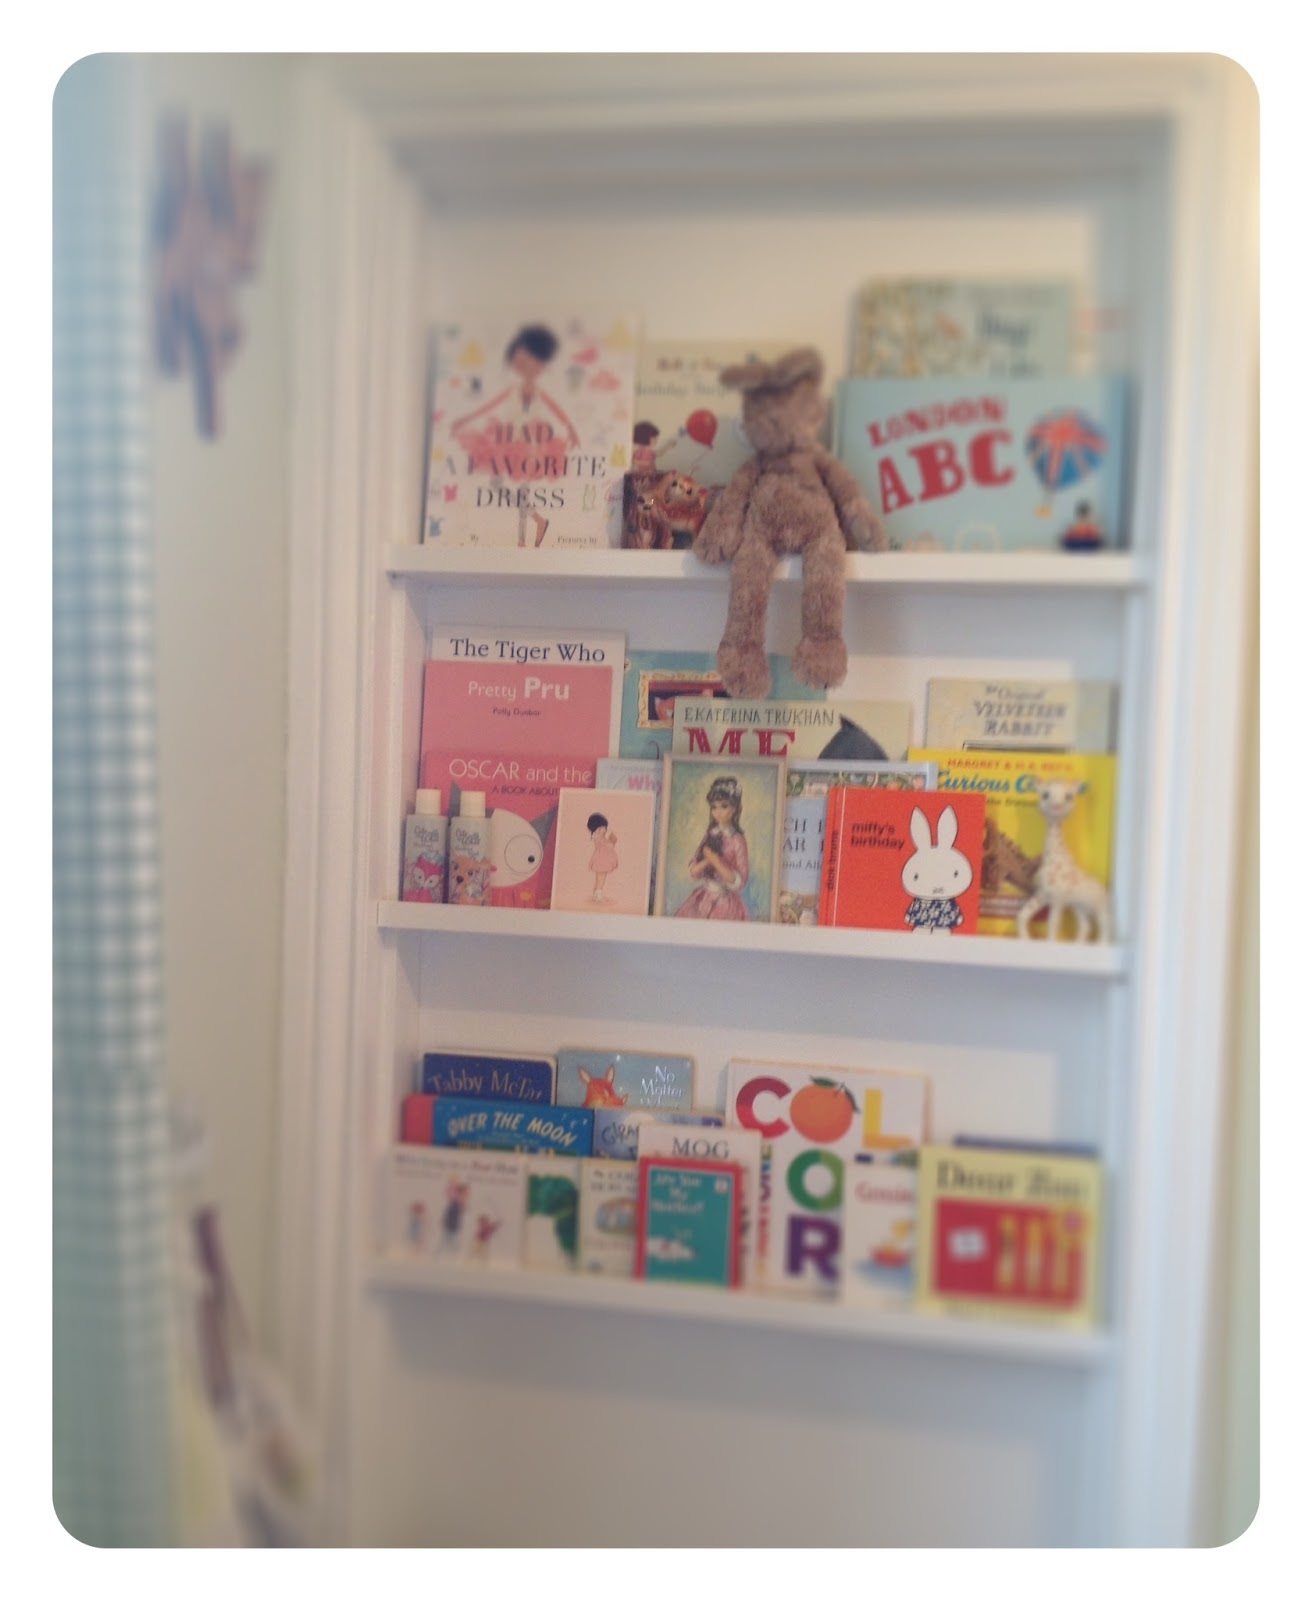 mamasVIB | V. I. BOOKCLUB: Clever ways to store kids books for tiny bedrooms, kids books, books shelves for kids, homify, kids book storage, tiny bedroom storage, kids book club, book shelves for kids, shelves, corner shelves, mamasVIB, mamas VIb bookclub, pinterest kids book shelves